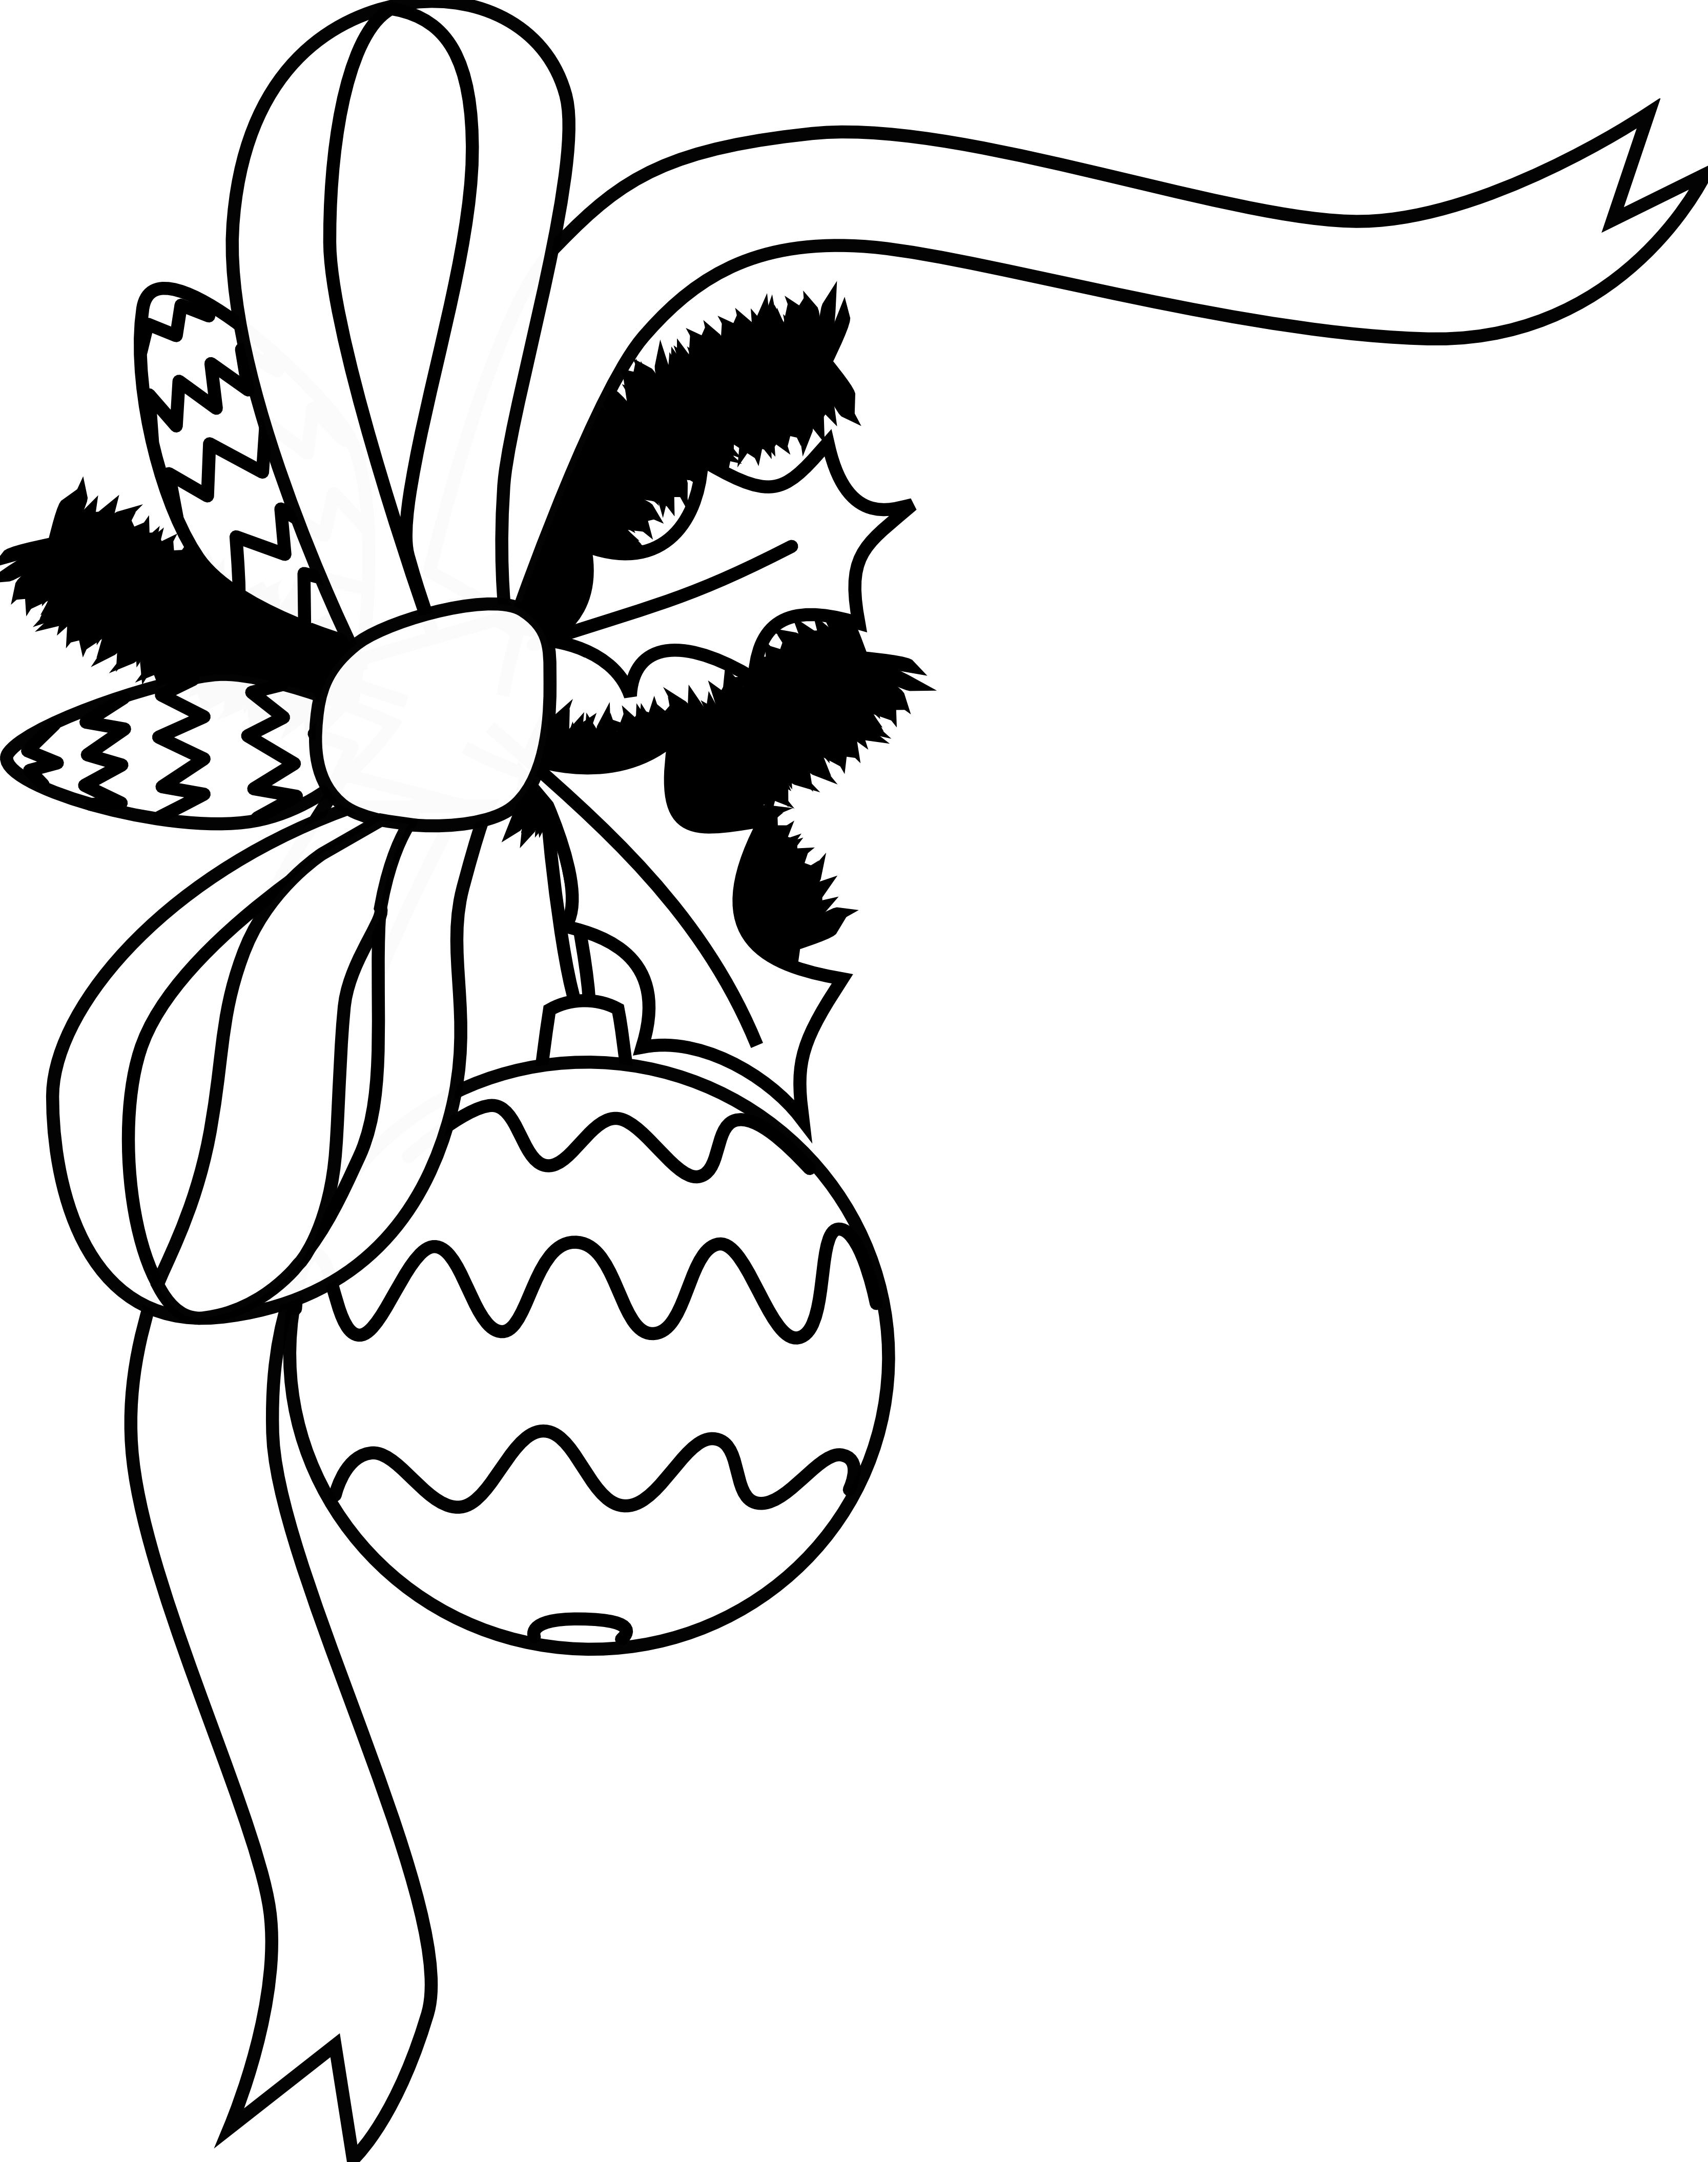 christmas border clipart black and white-christmas border clipart black and white-0